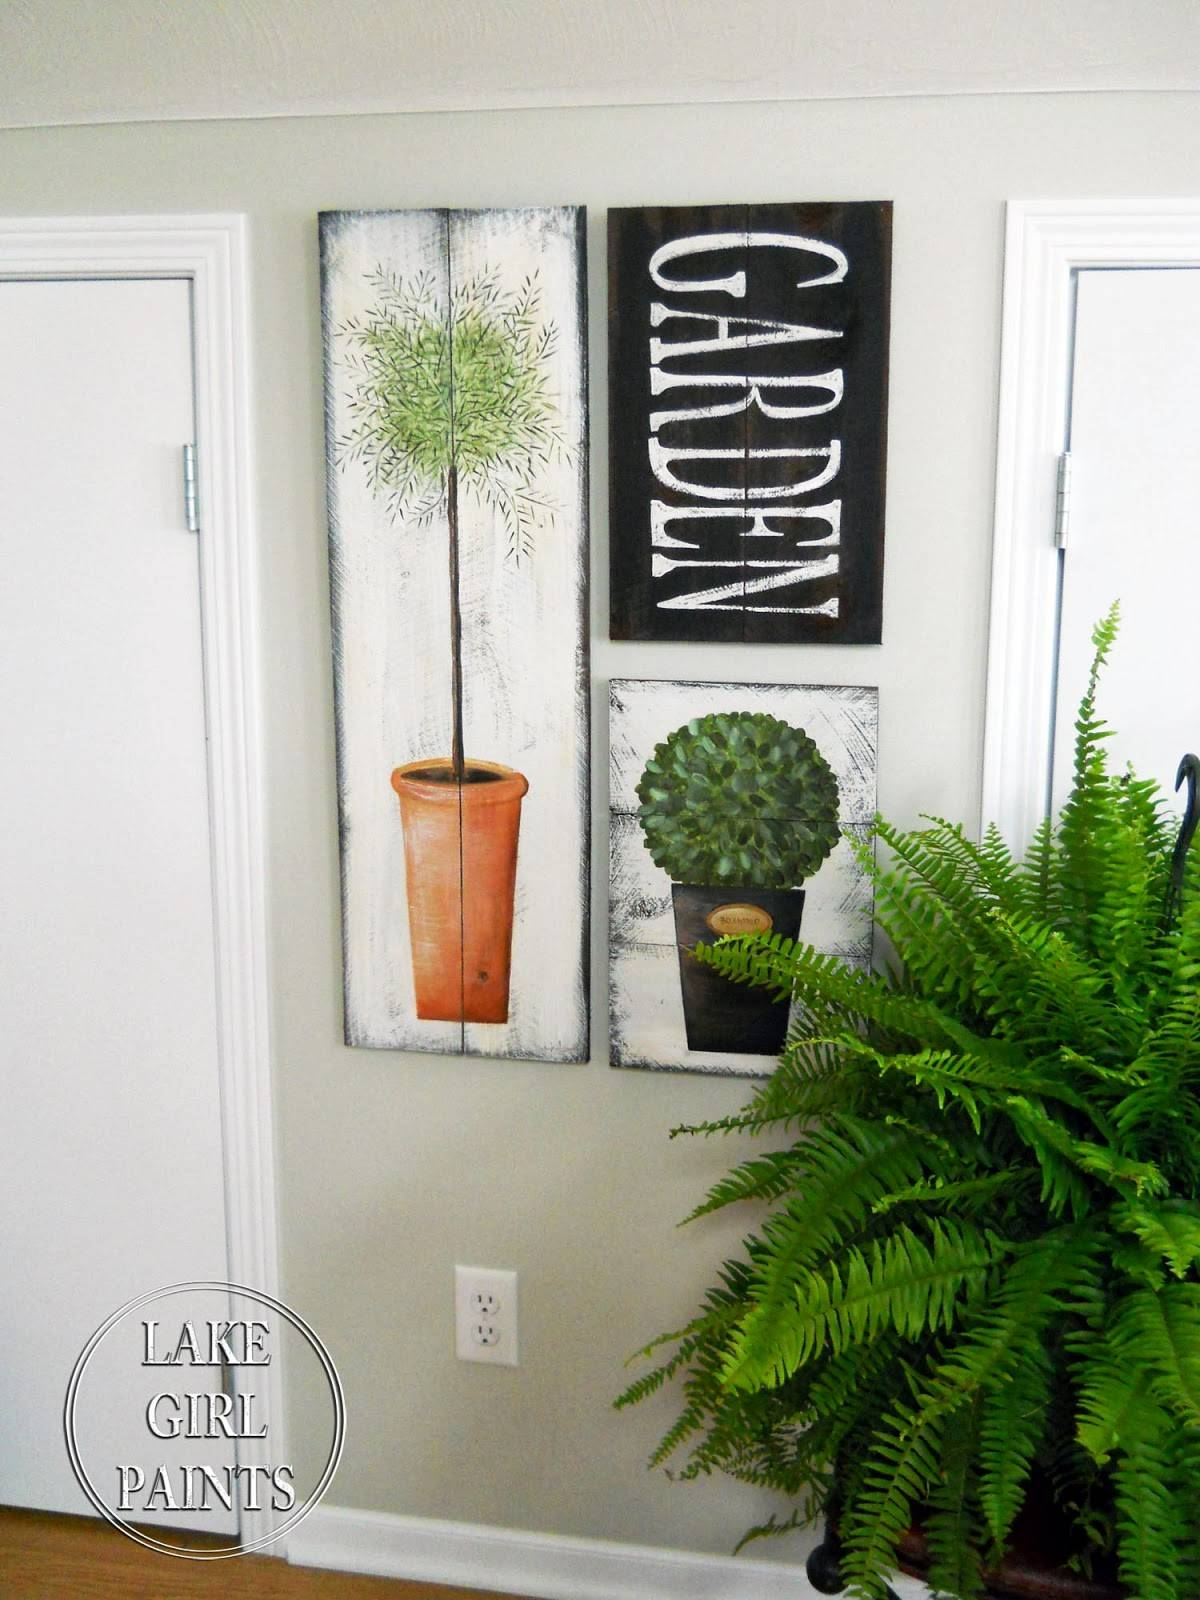 Lake Girl Paints: Topiary Garden Art On Rustic Boards With Recent Topiary Wall Art (View 6 of 30)